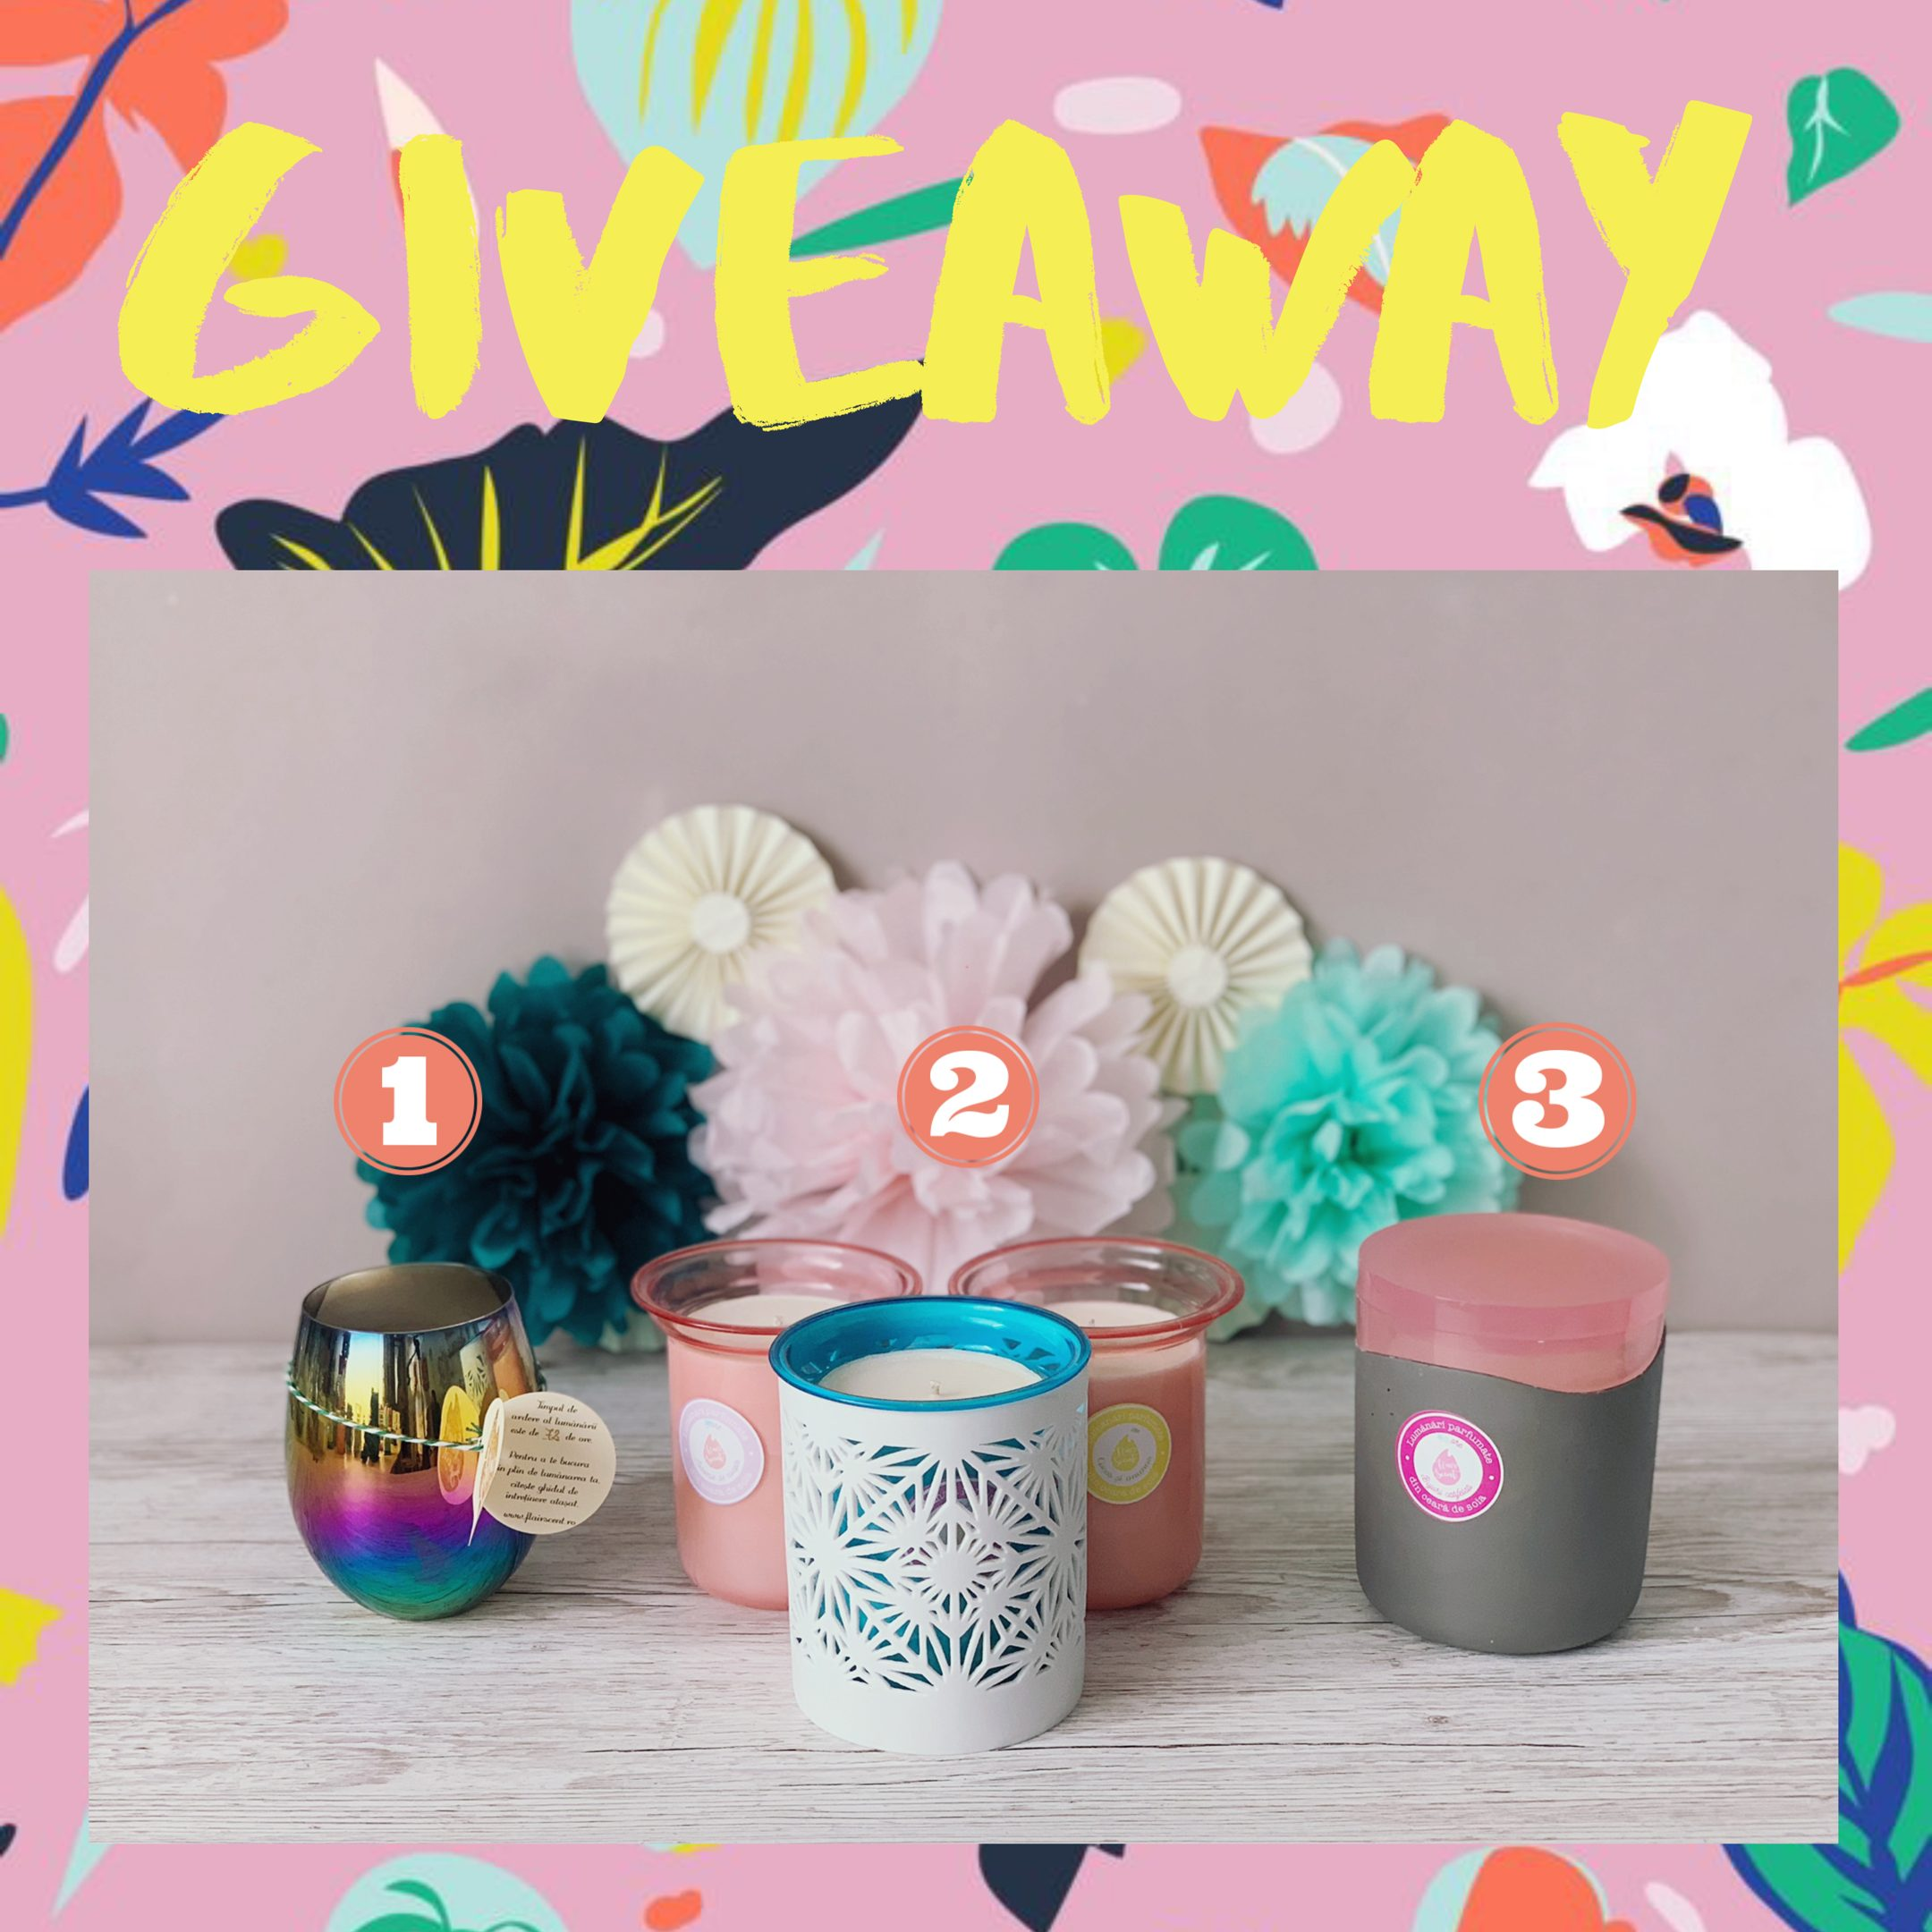 Giveaway creativ